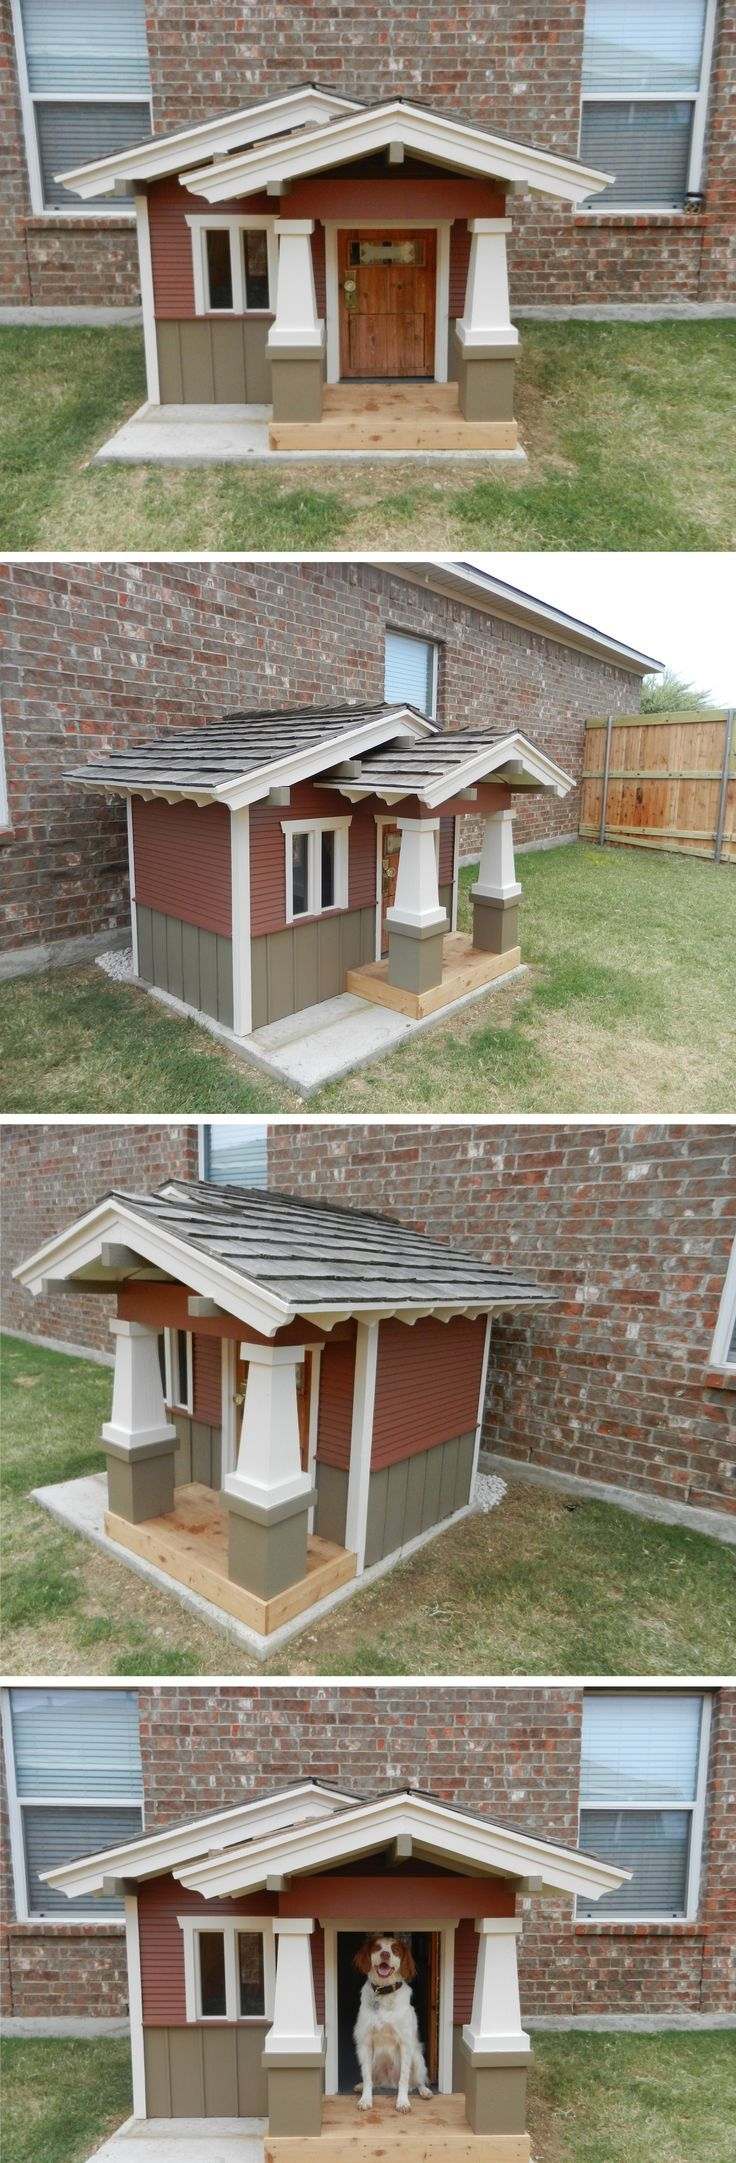 37 Best In The Dog House Images On Pinterest Amazing Dog Houses